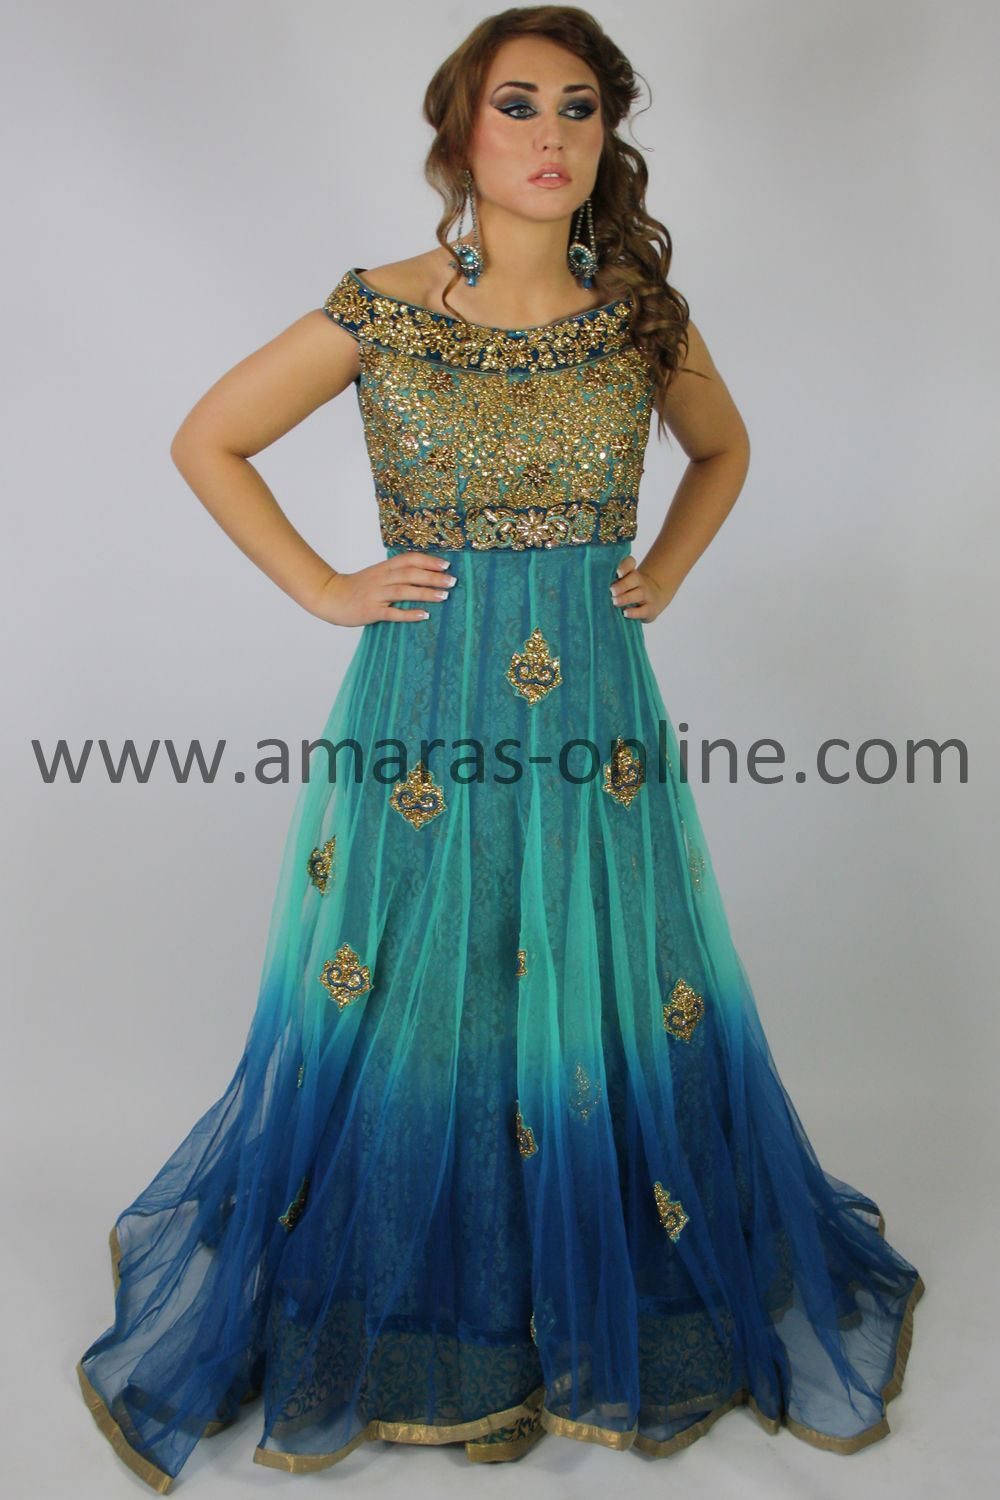 """Amara's """"Eminent Two-Tone Trail Dress with Long Skirt""""[A6658] £495.00 ~ $758"""